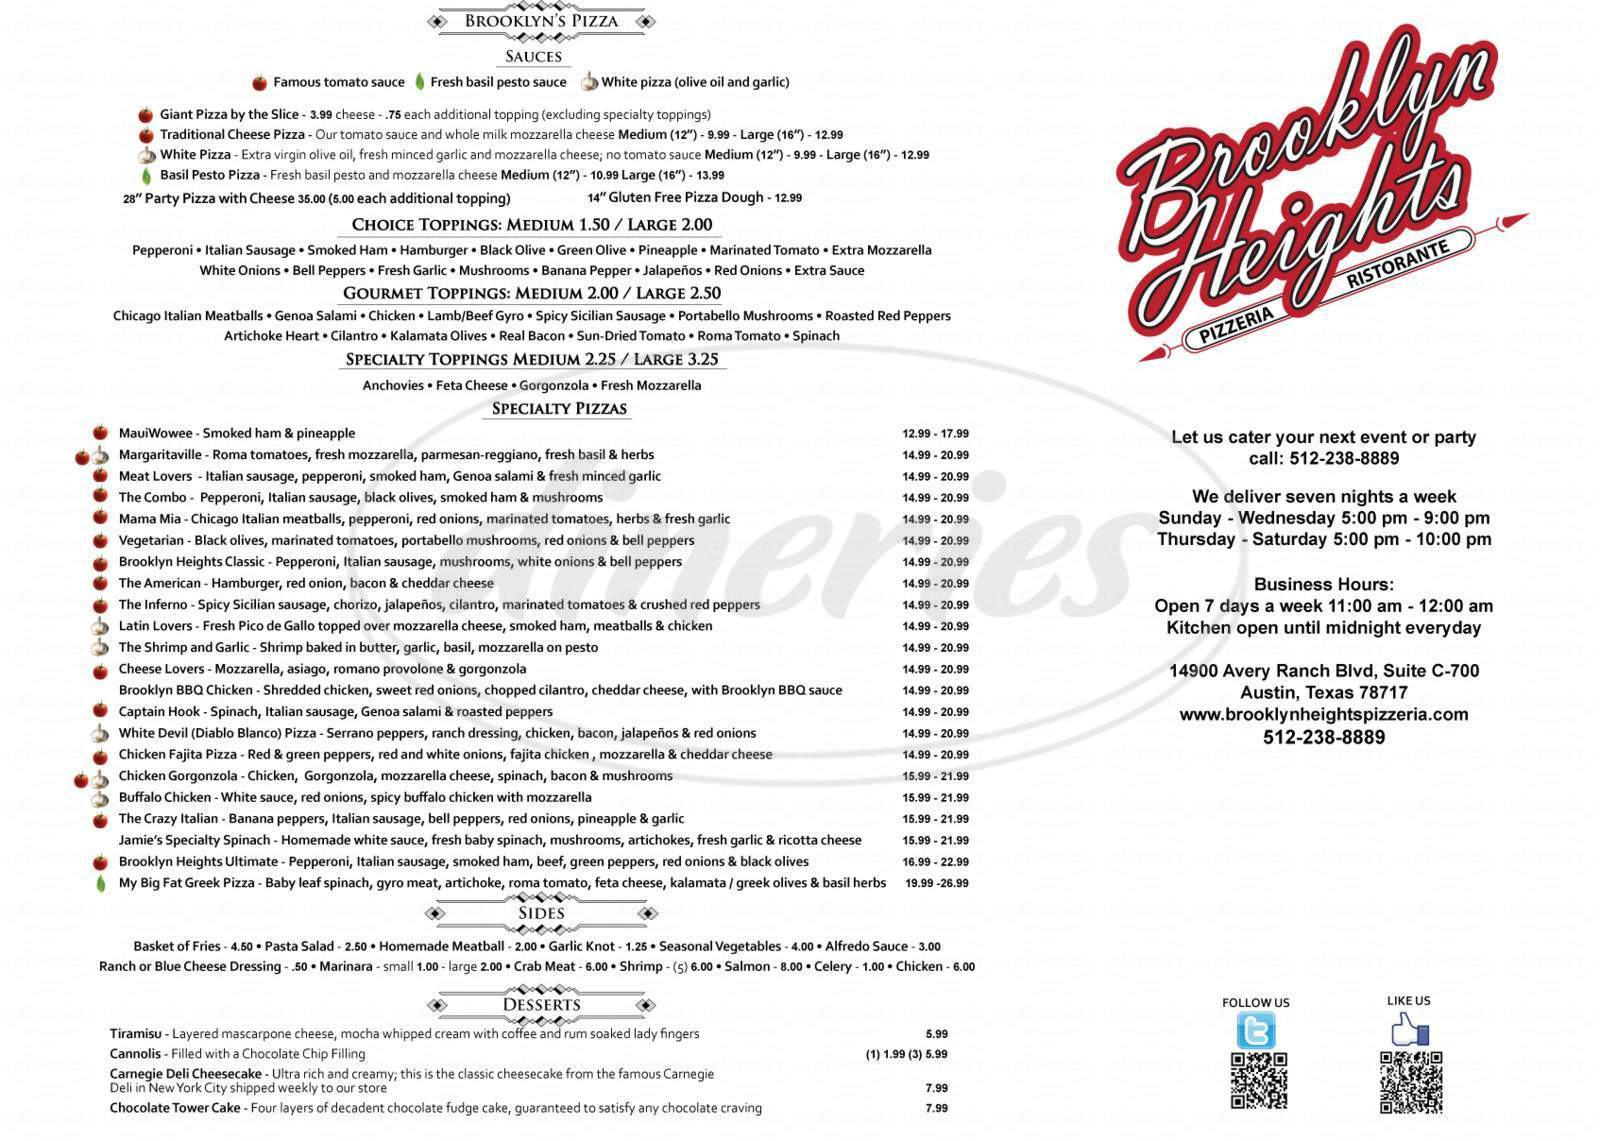 menu for Brooklyn Heights Pizzeria